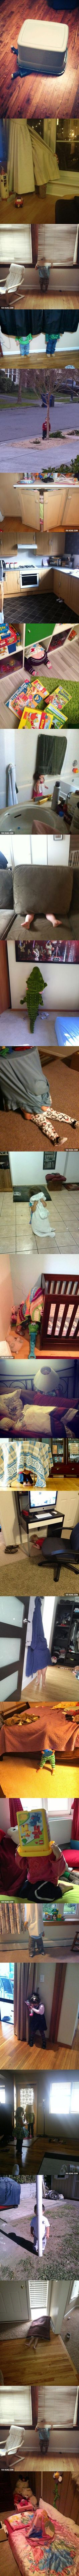 These Kids Are Hilariously Bad At Hide And Seek. This Had Me Laughing So Hard…